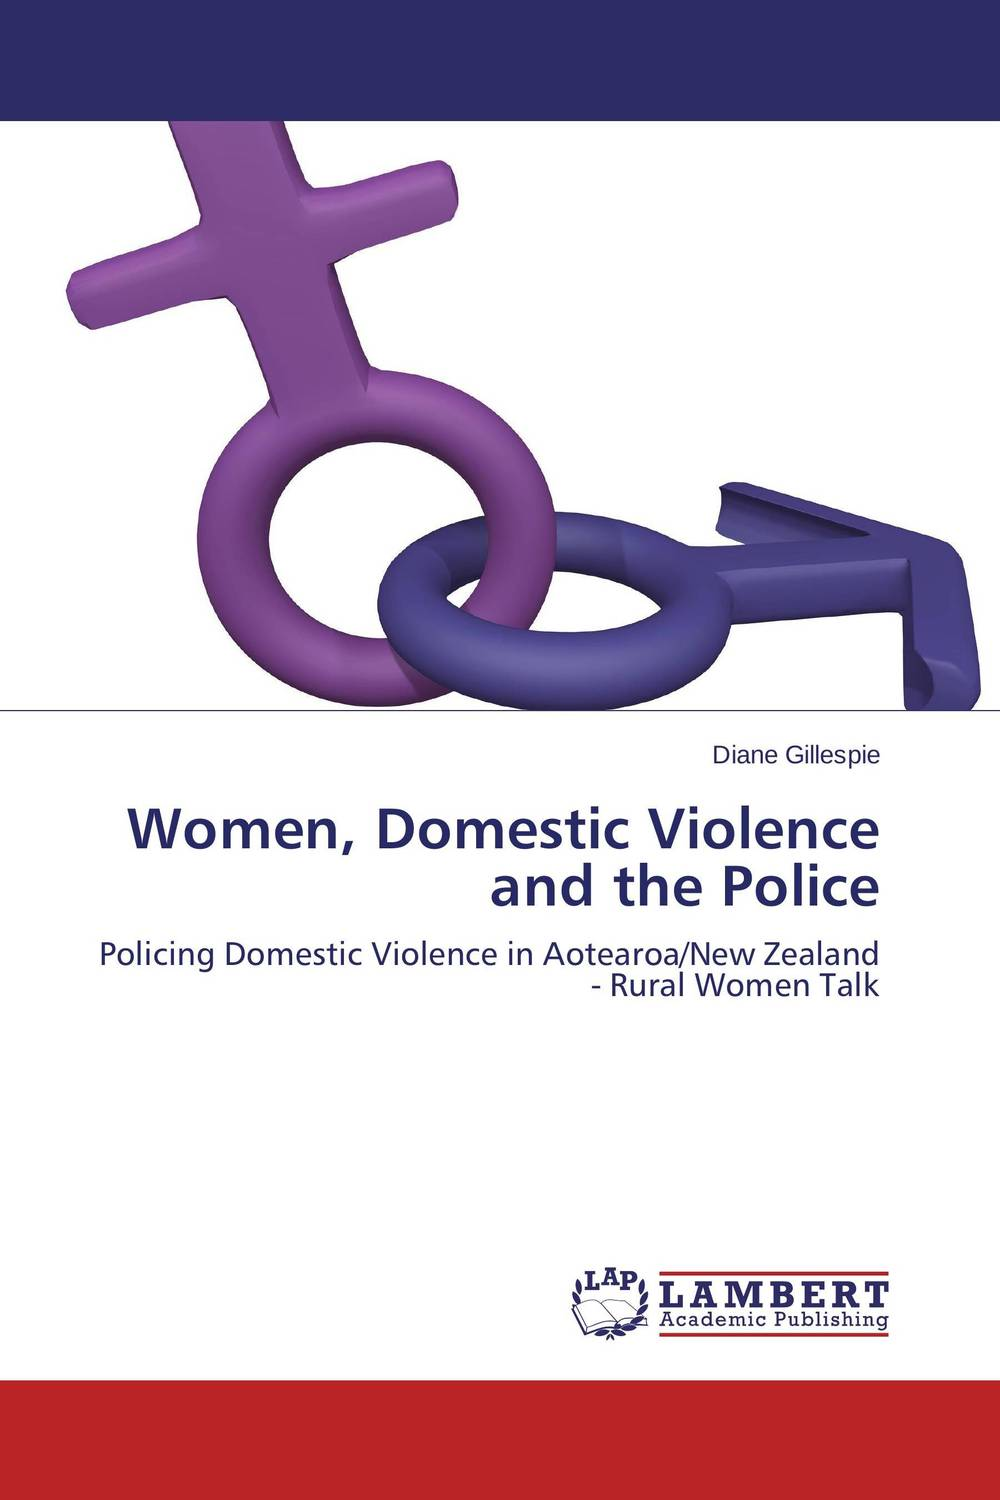 Women, Domestic Violence and the Police